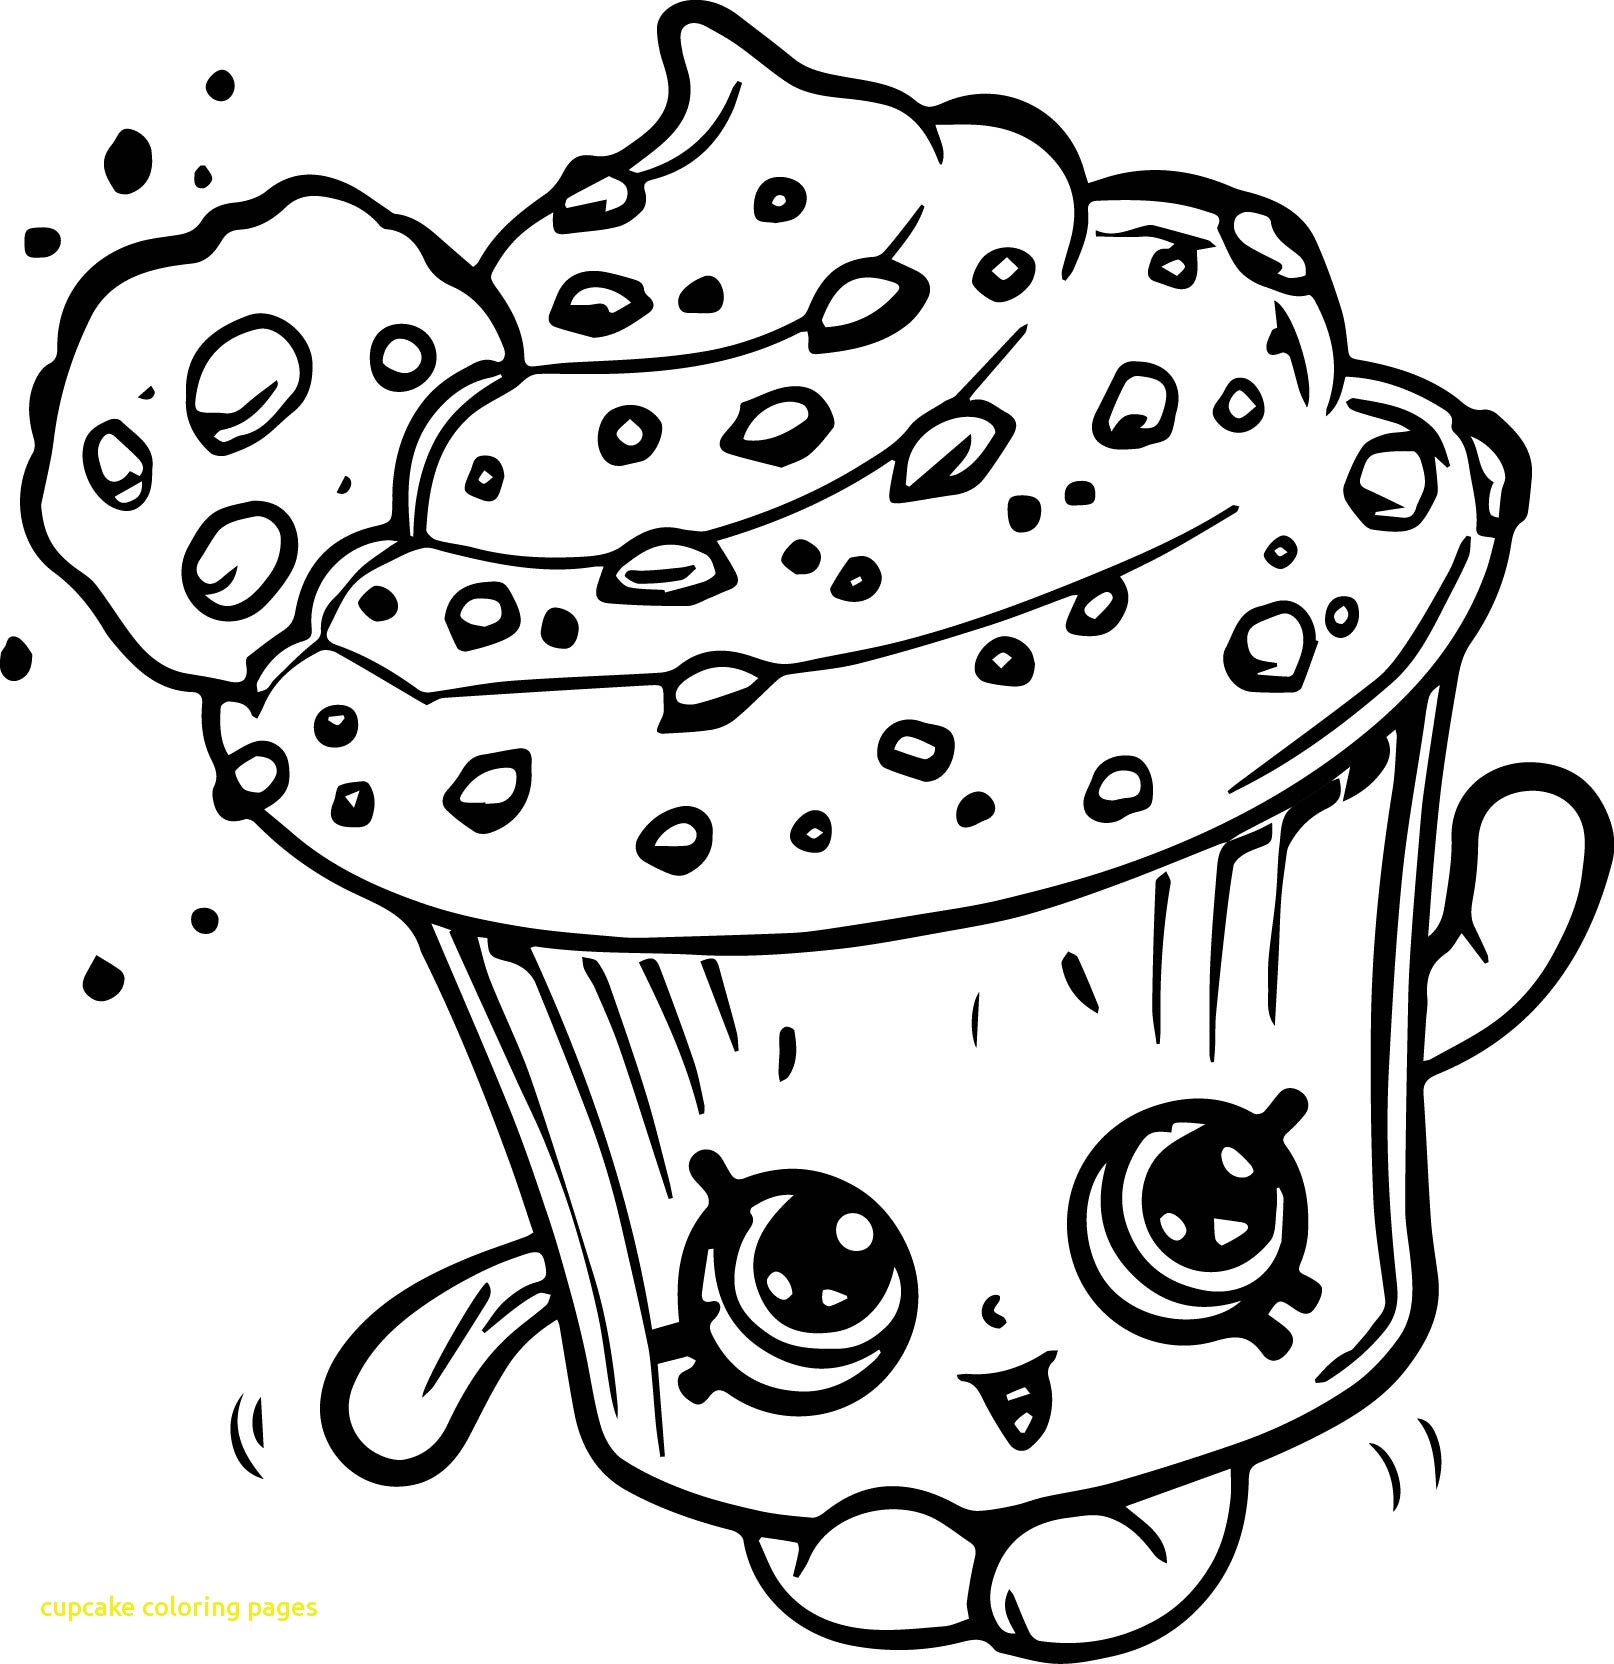 cartoon cupcake coloring pages birthday cupcake coloring pages download and print for free pages cartoon cupcake coloring